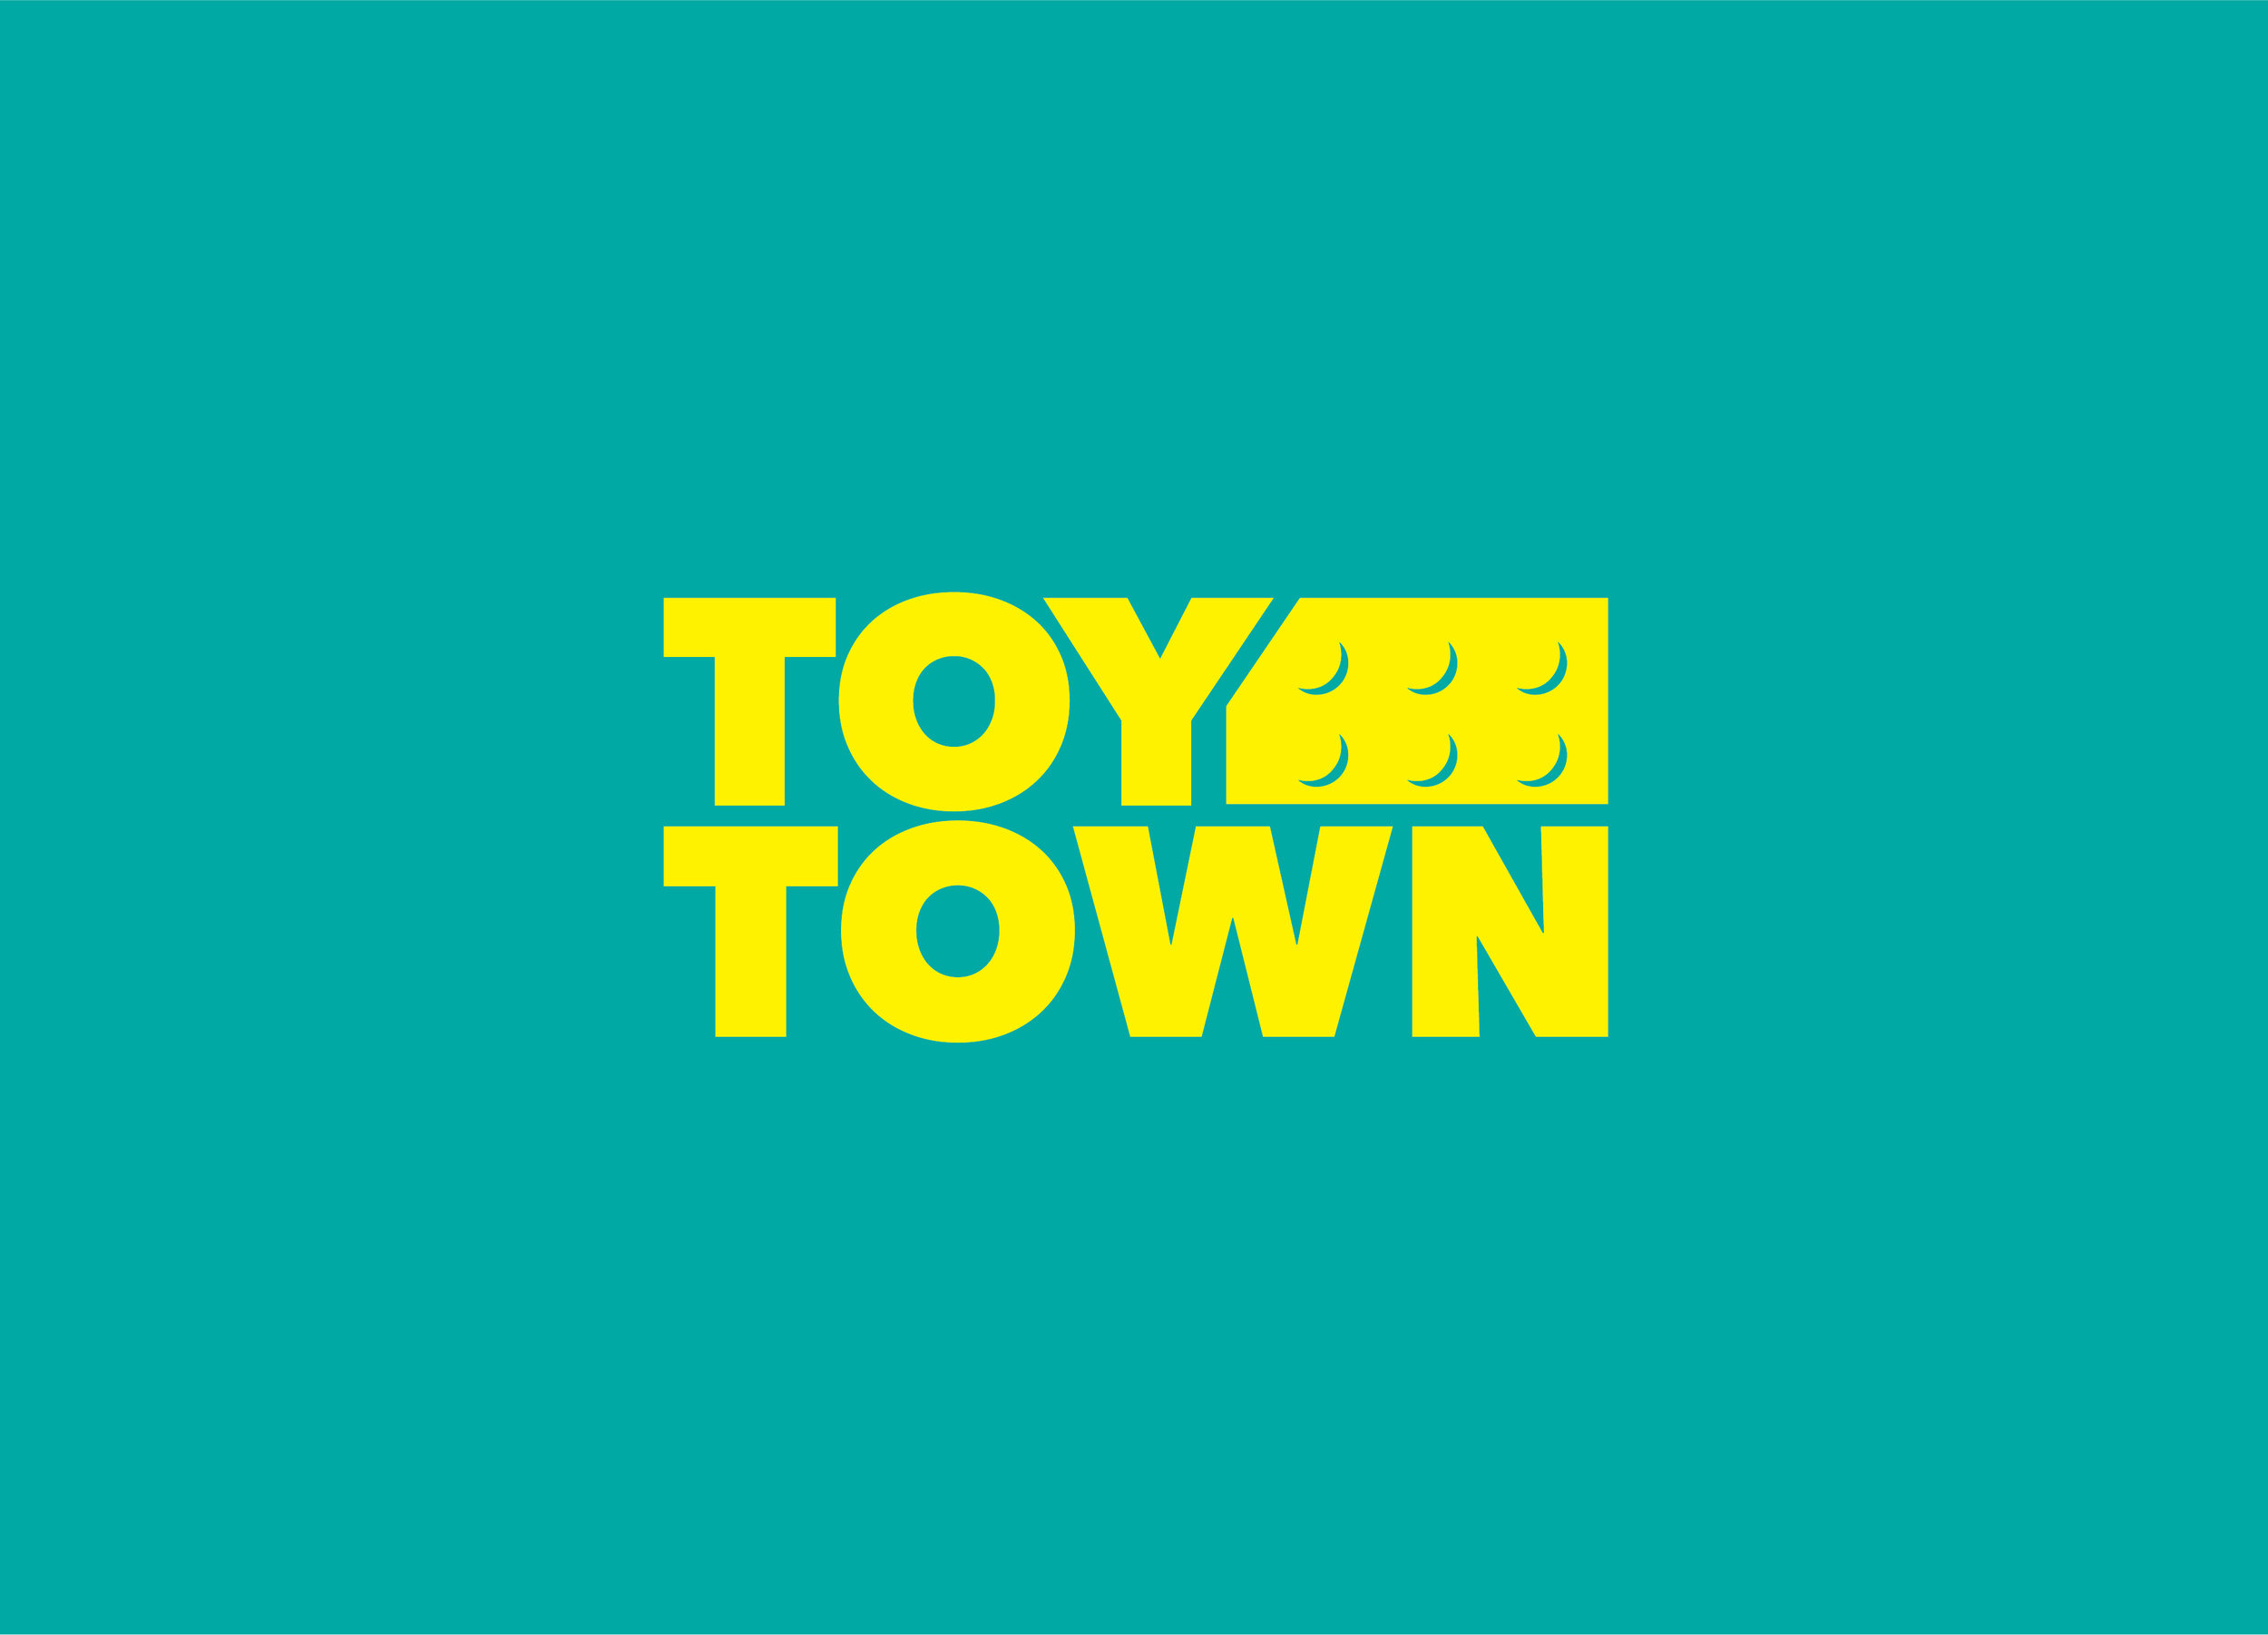 toy-store-logo